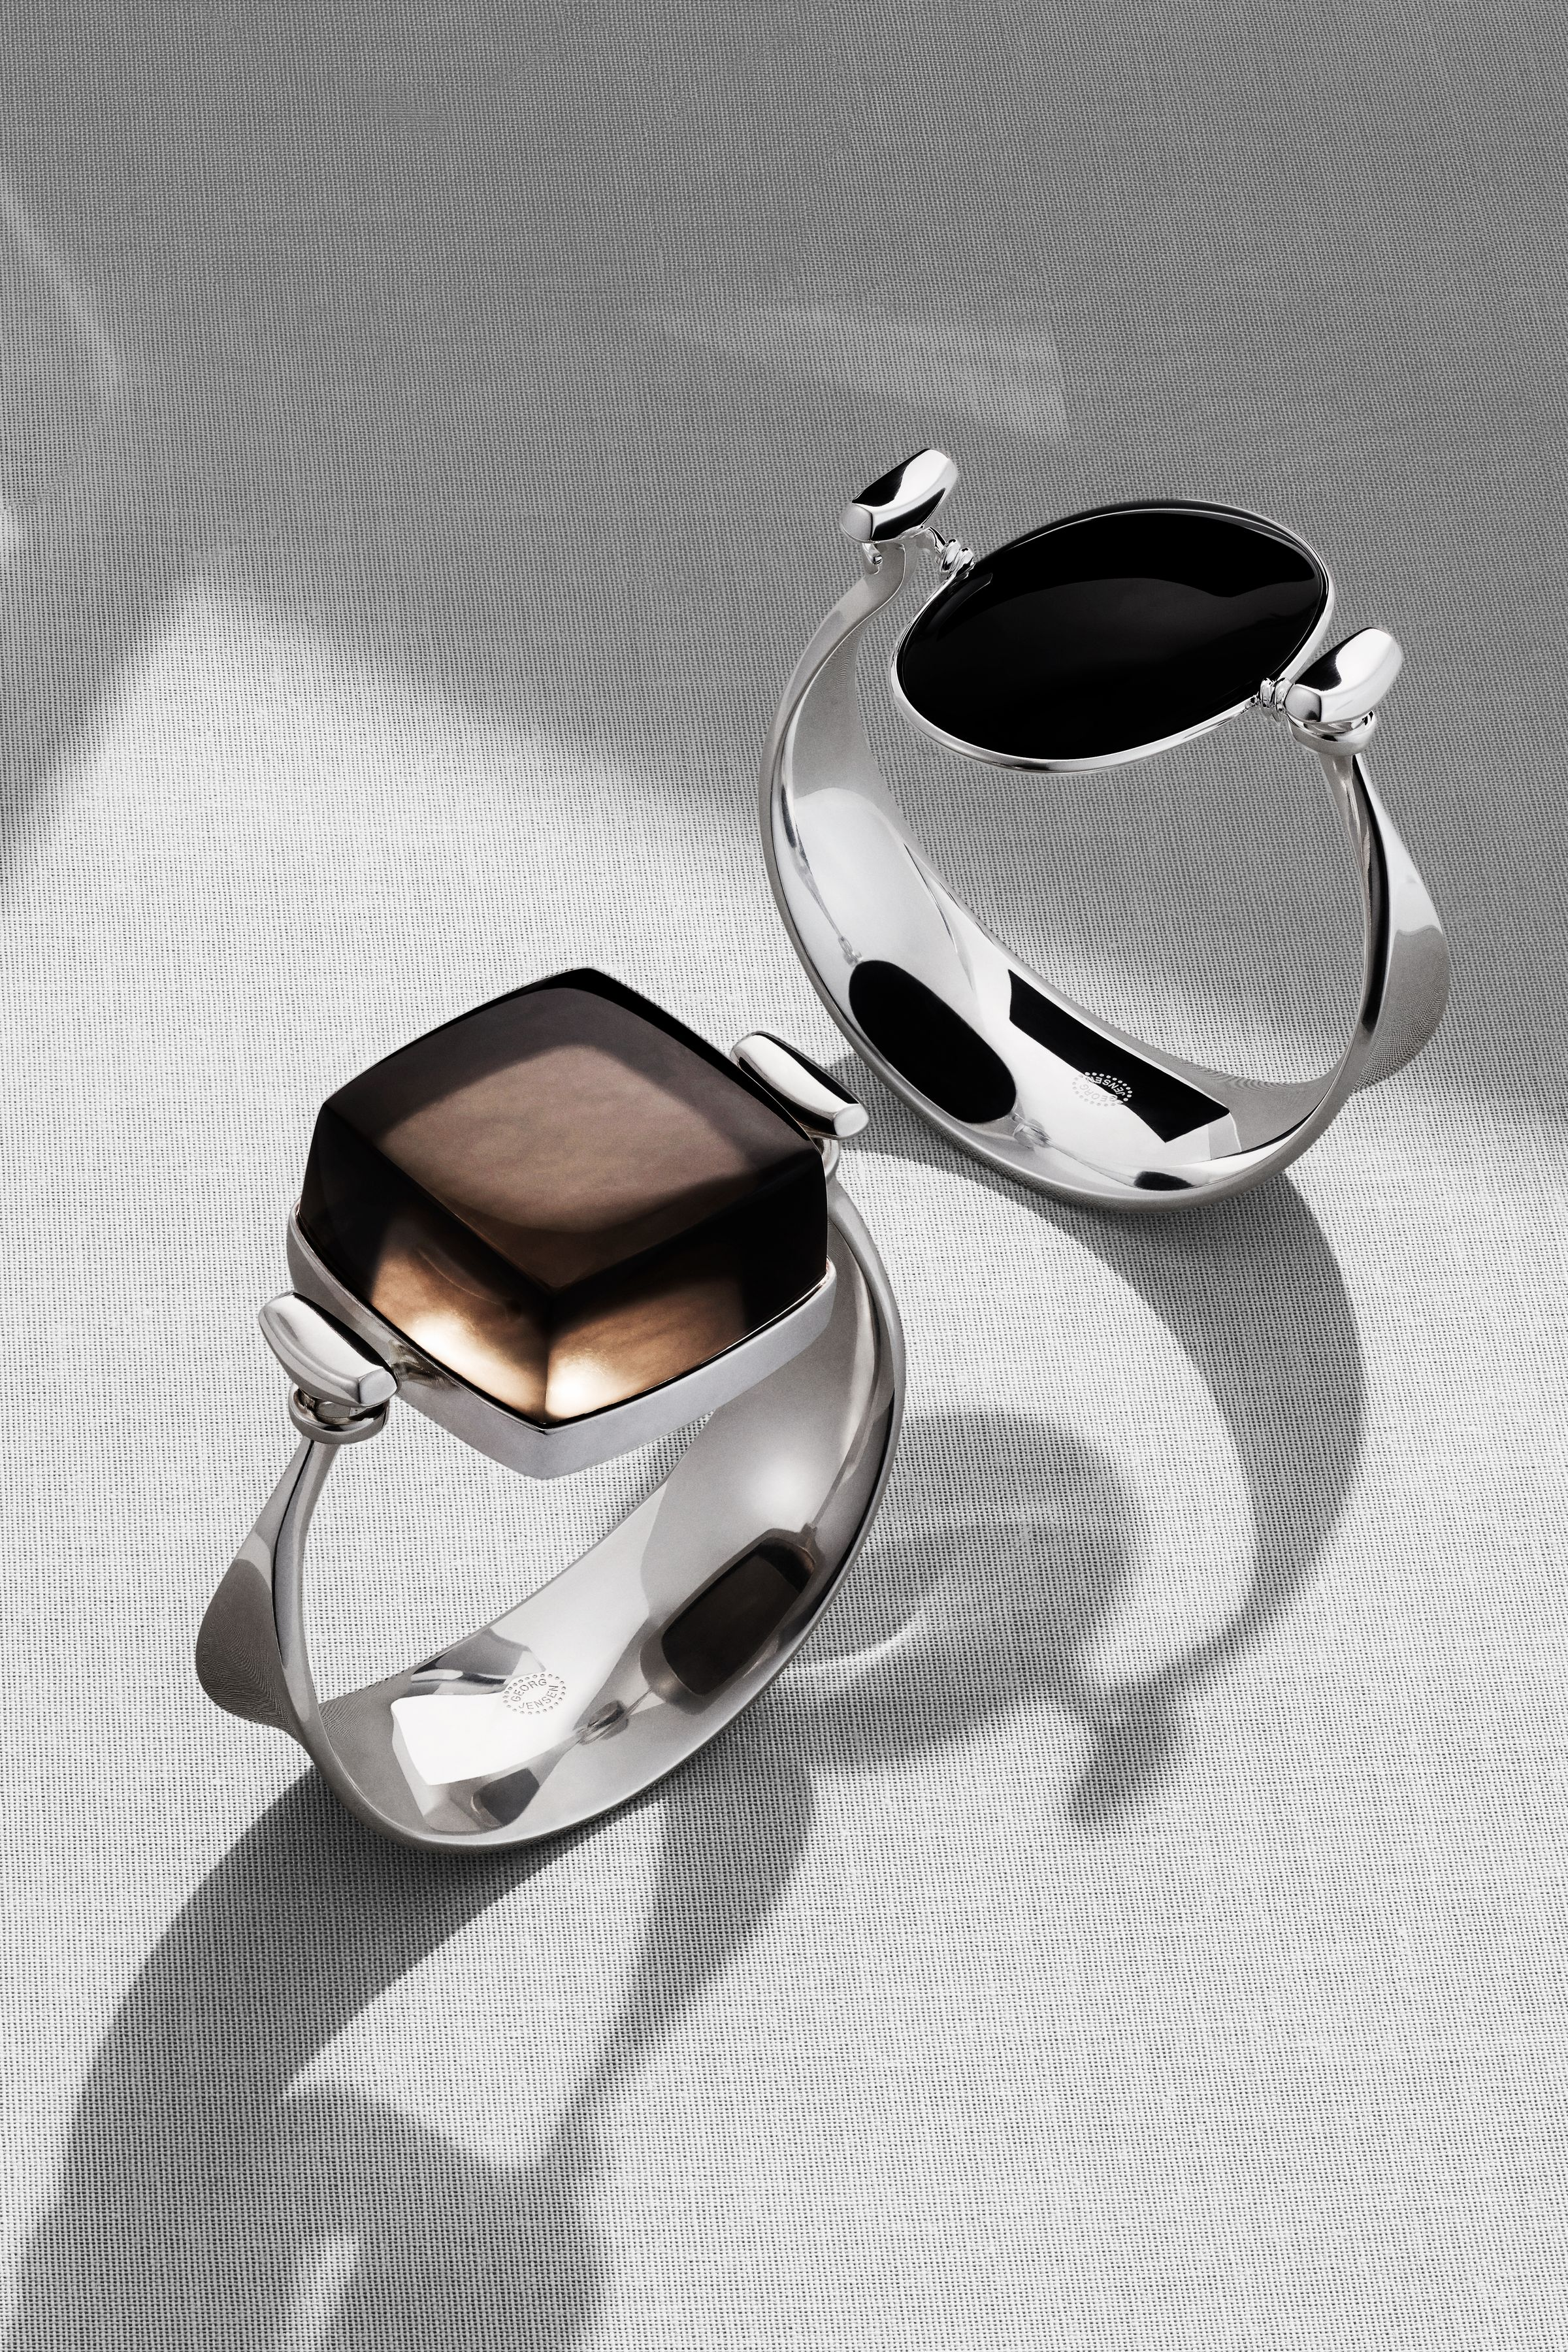 Georg Jensen still life campaign photographed by Toby McFarlan Pond